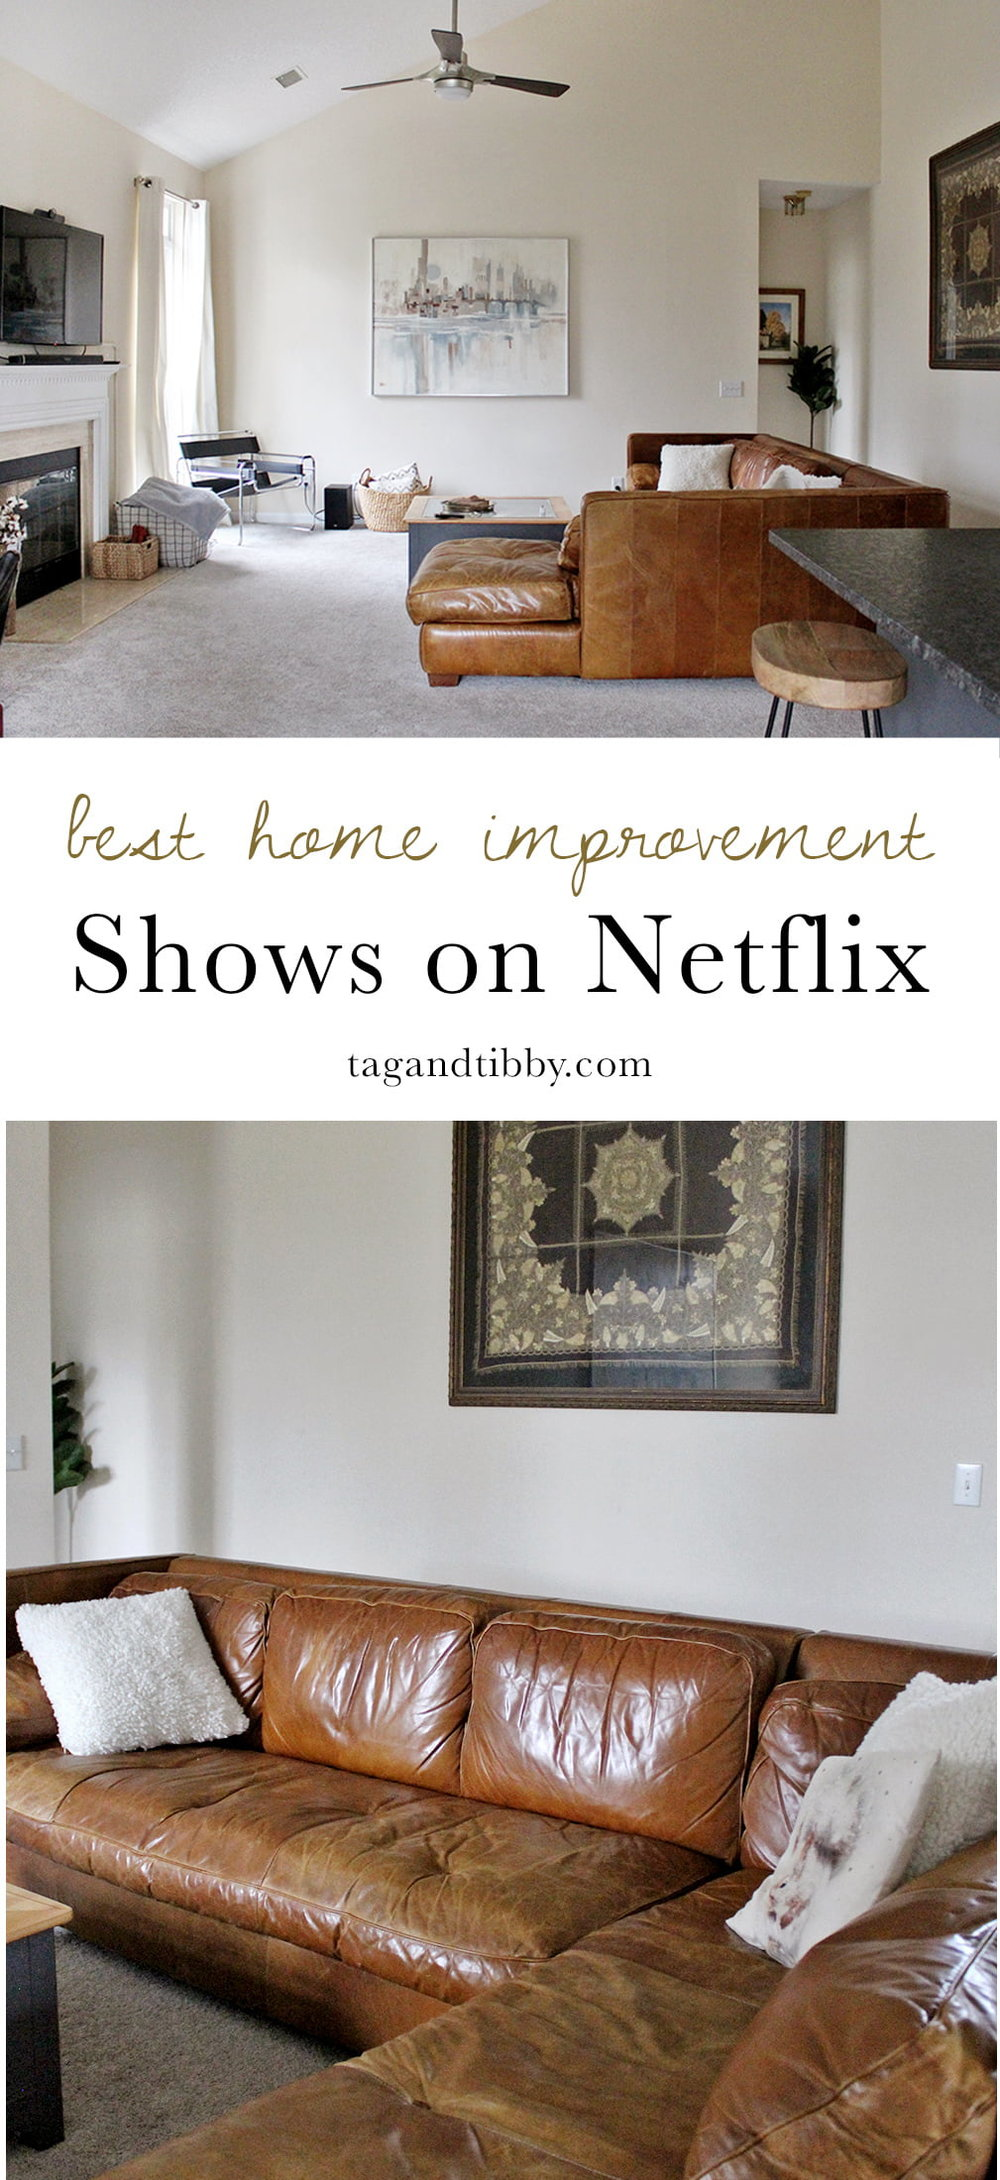 the 6 best home improvement shows to stream on Netflix this winter